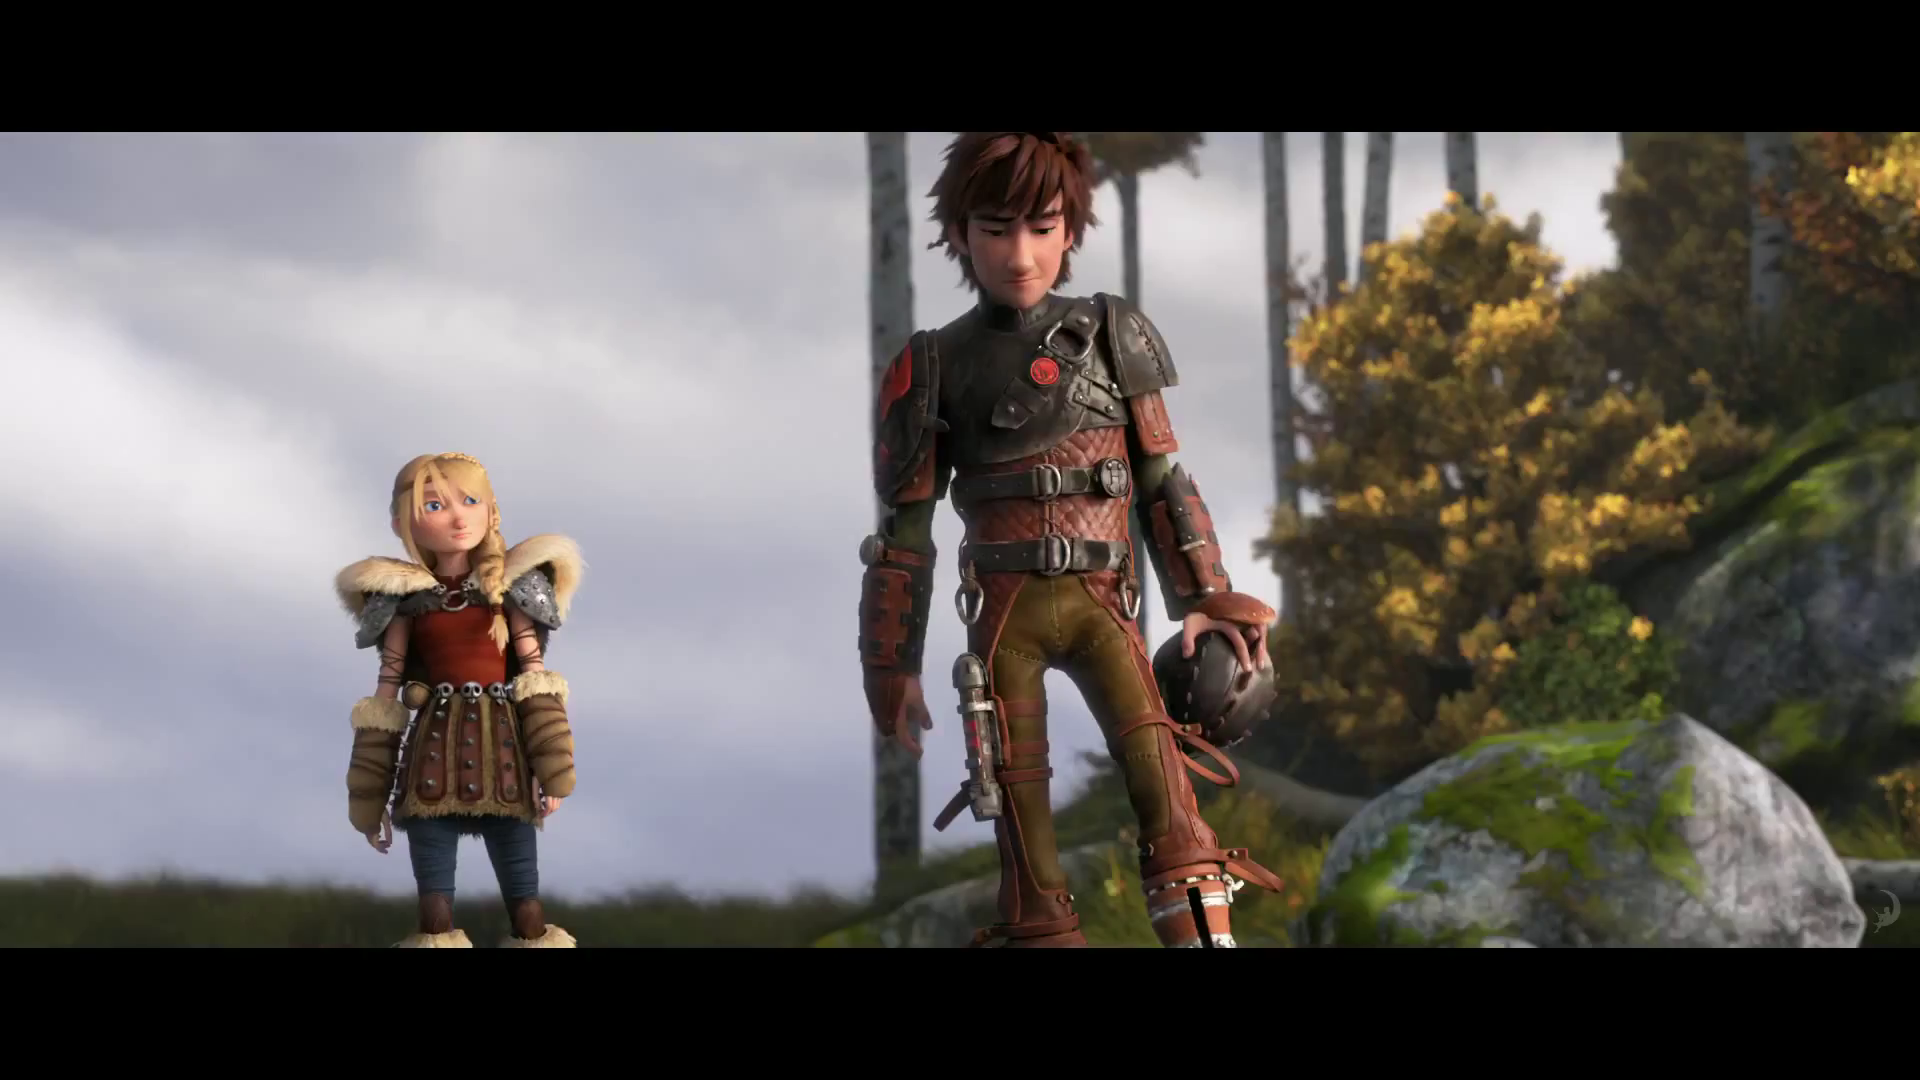 Hiccstrid une relation intime ? - Page 2 HTTYD-2-Astrid-and-Hiccup-how-to-train-your-dragon-37178276-1920-1080